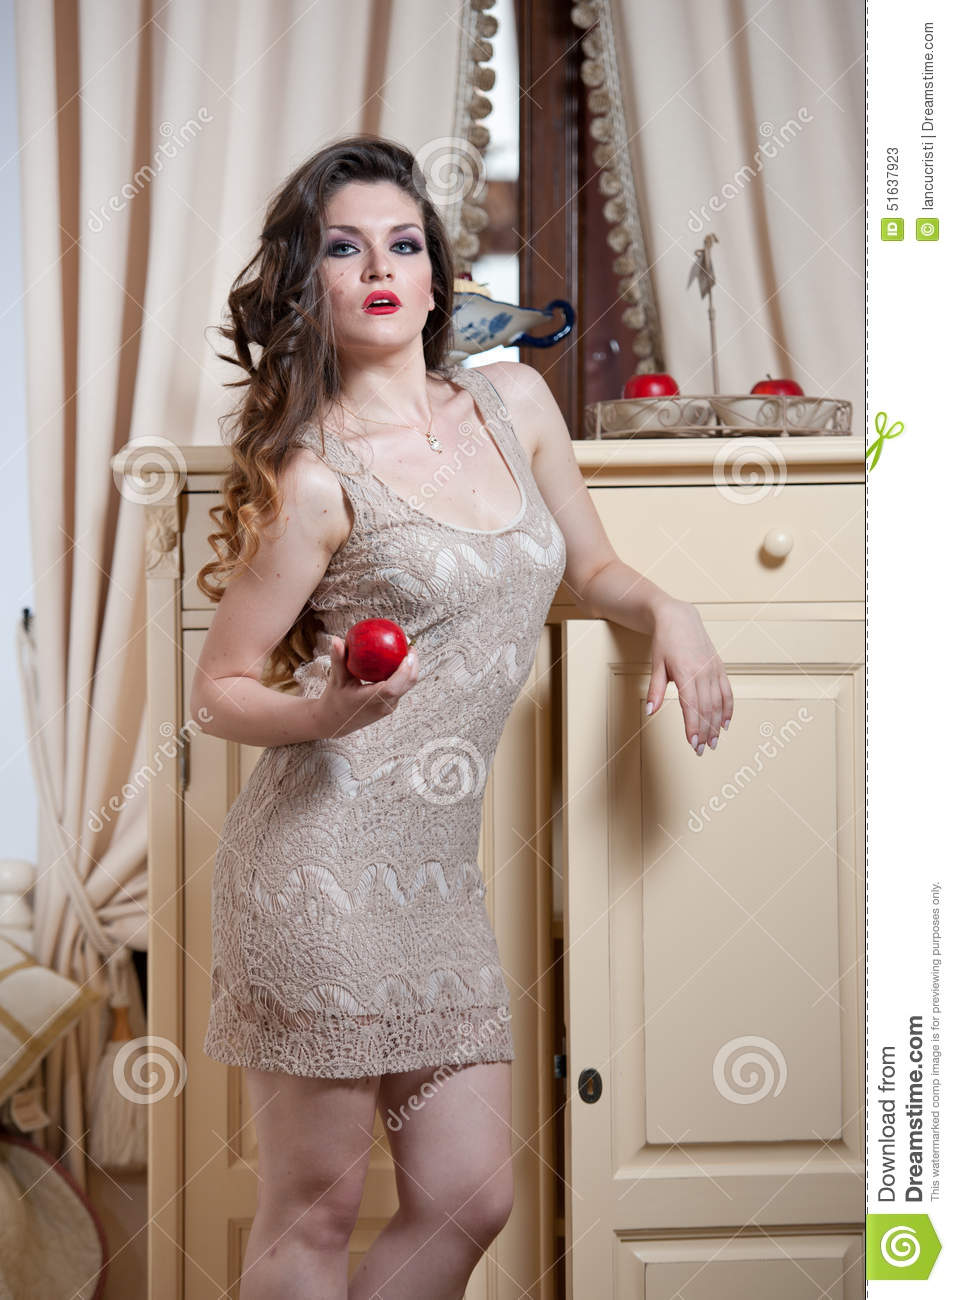 Nude Red Hair Woman 43